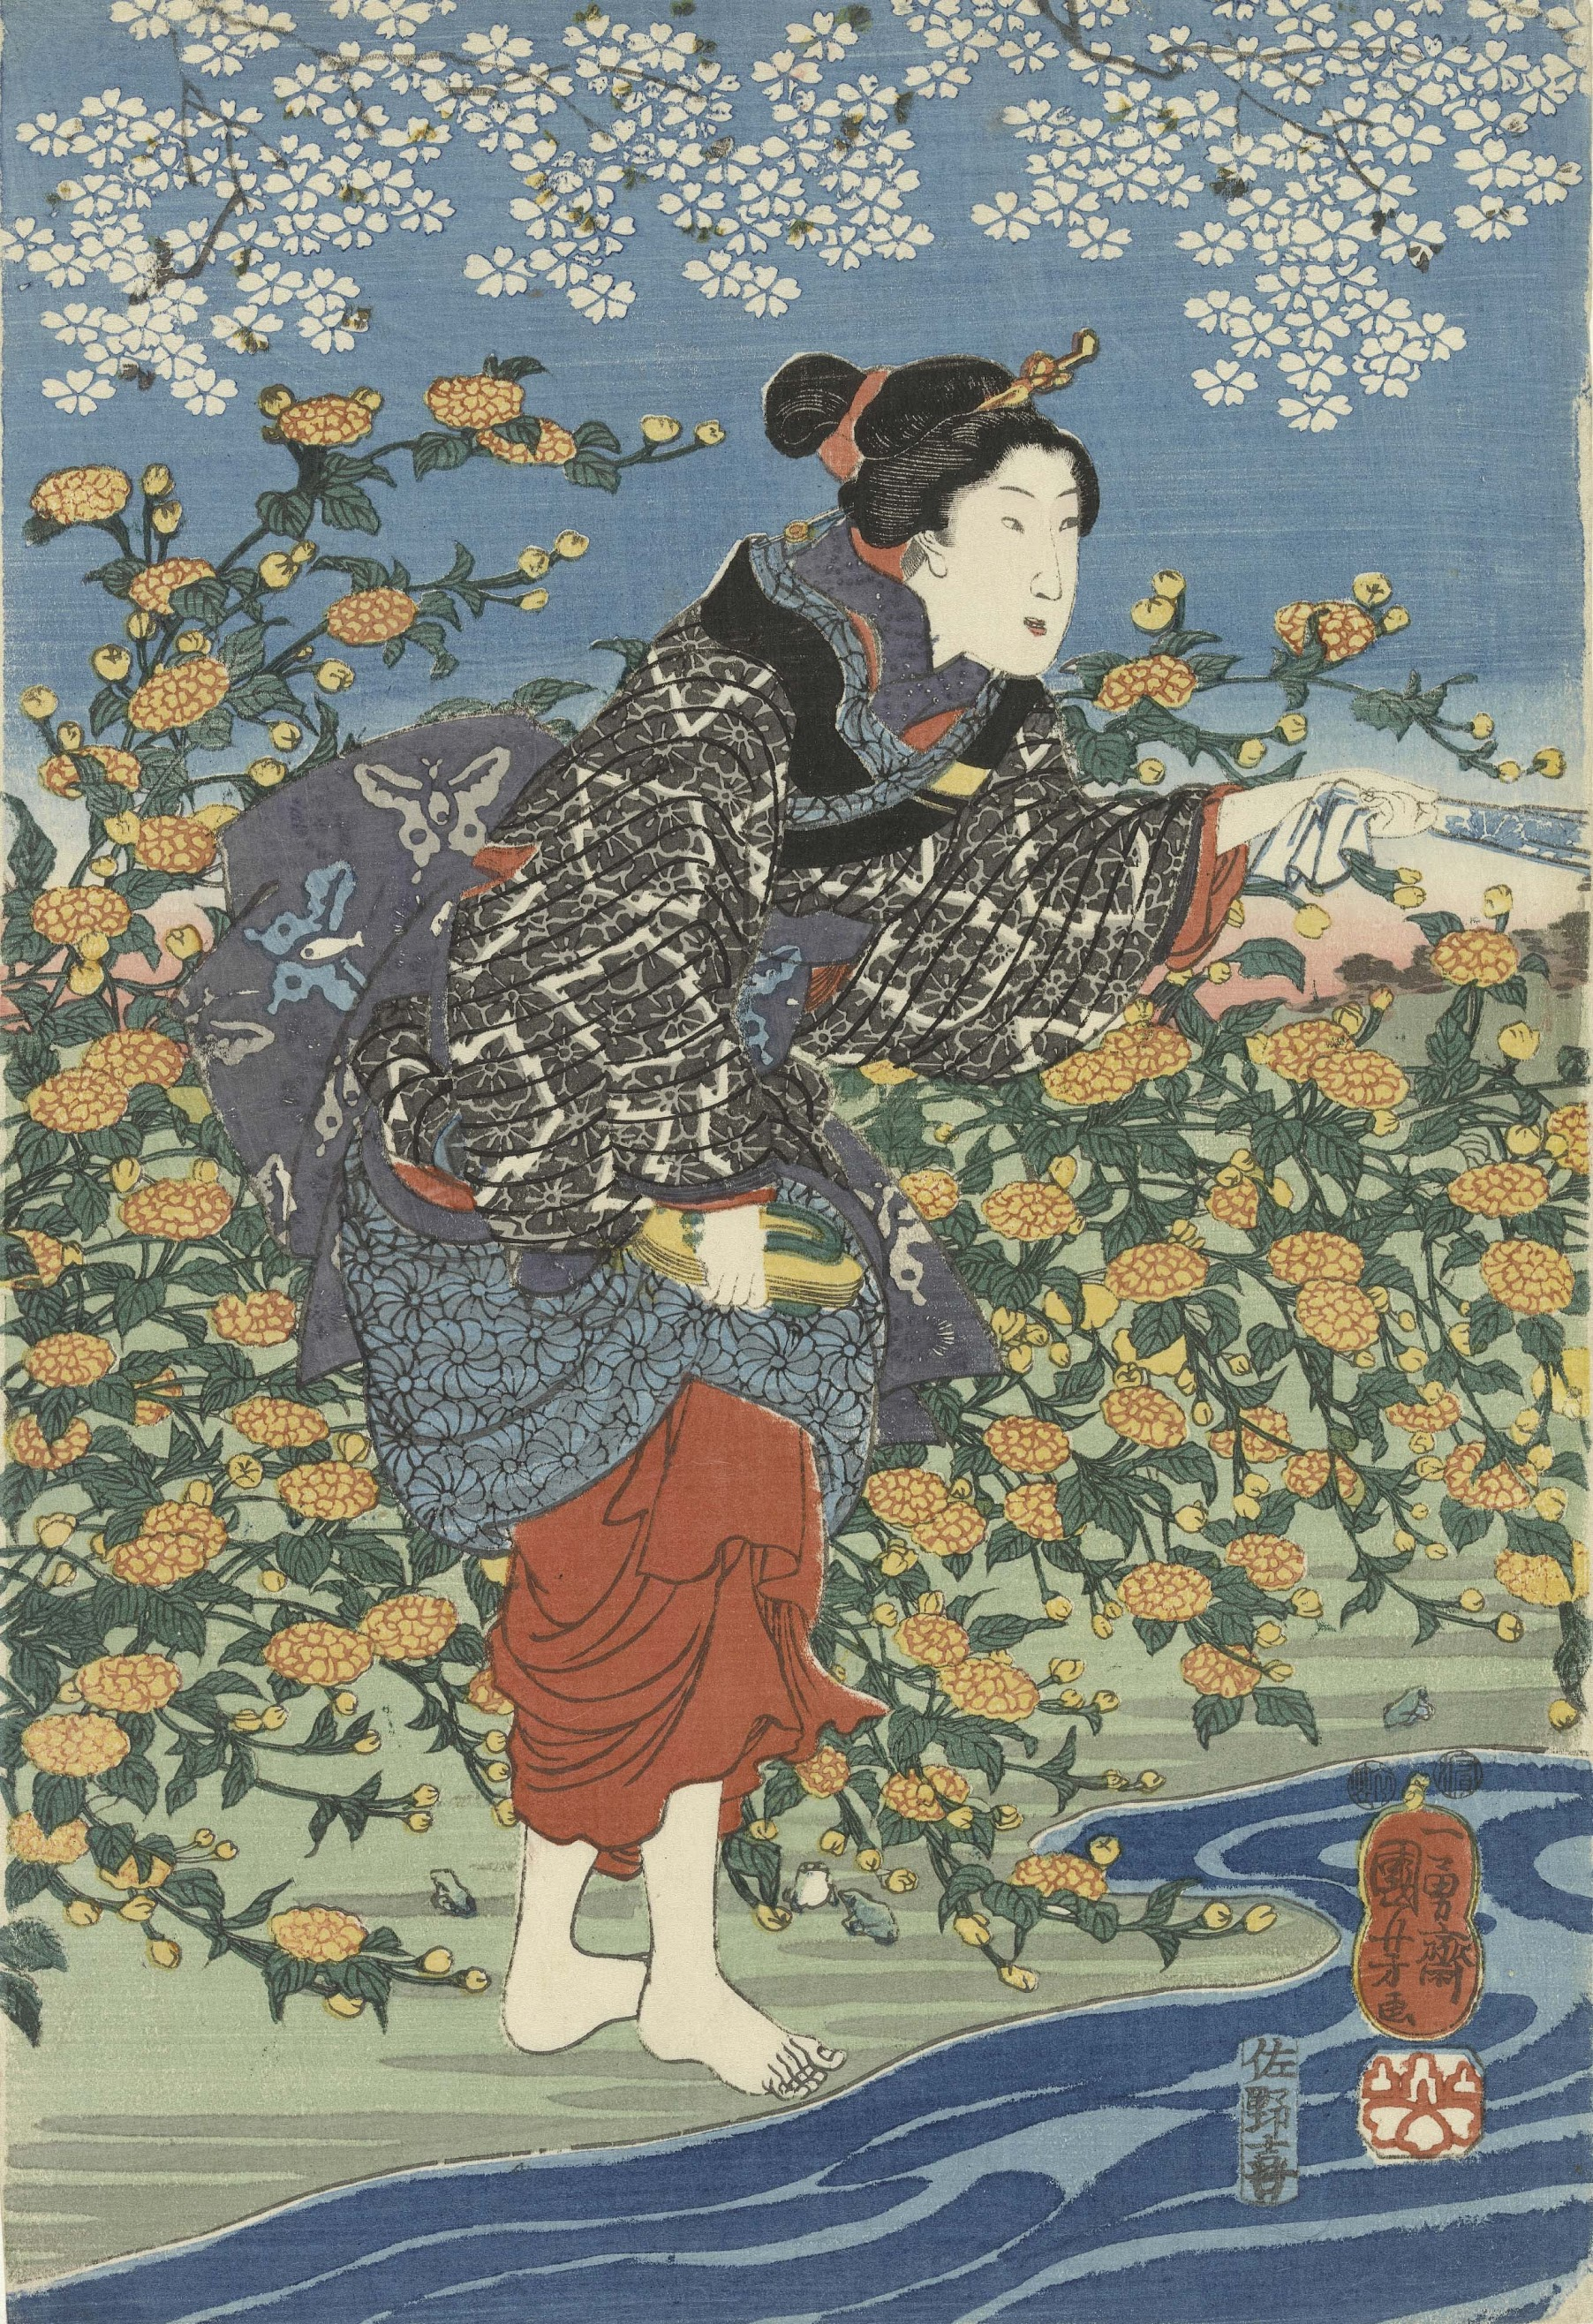 Woman on a Riverbank, left sheet of the tryptich The Crystal River of Ide in Yamashiro Province, from an untitled series of the Six Crystal Rivers Edo, 1847-1848 Utagawa Kuniyoshi (1797 - 1861)